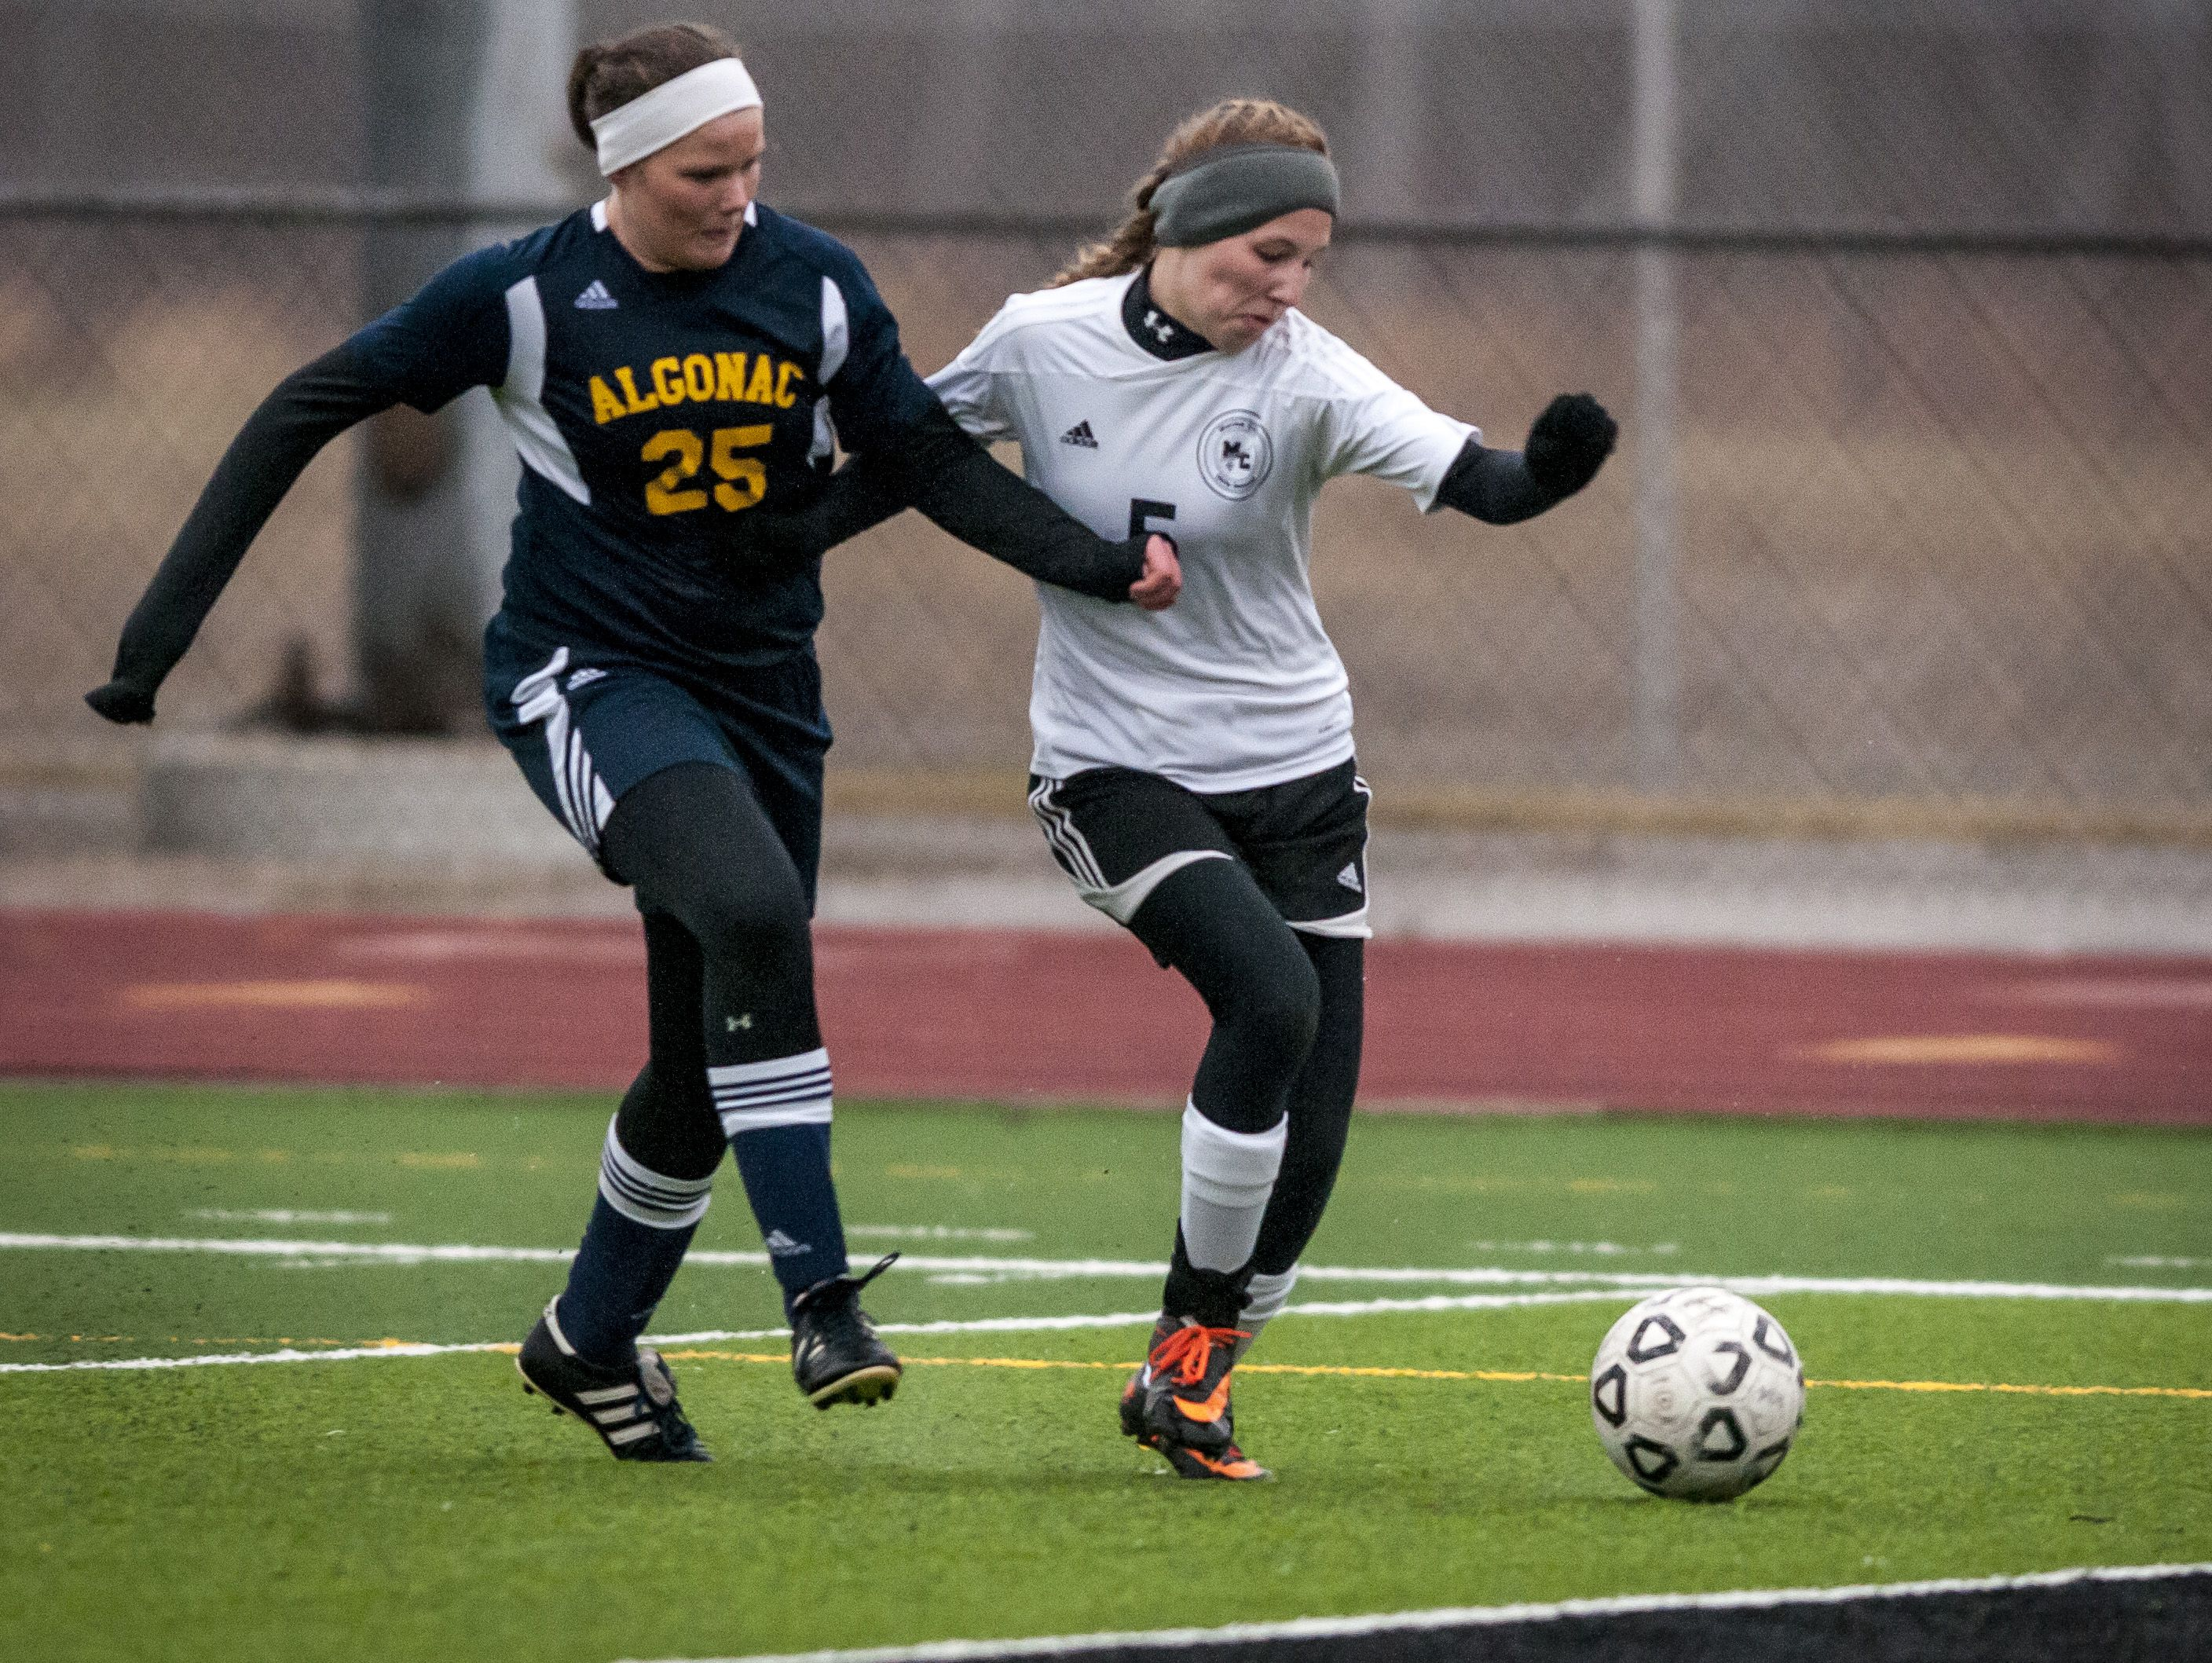 Algonac sophomore Madisyn Wilson puts pressure on Marine City junior Emilie Andrews during a soccer game Wednesday, March 23, 2016 at East China Stadium.